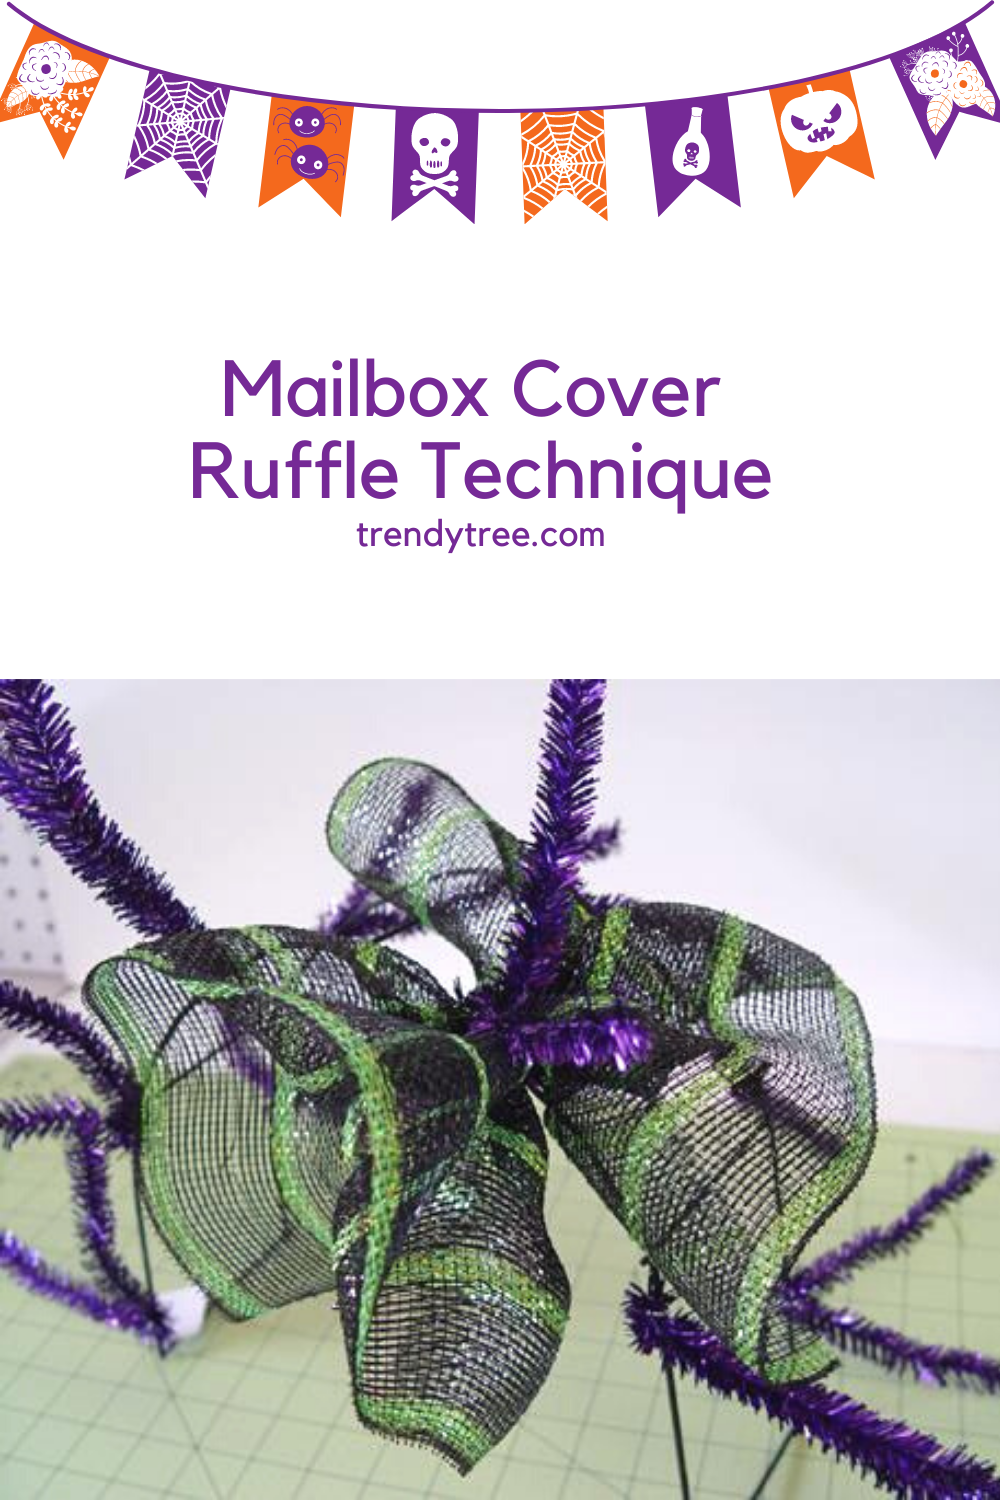 Mailbox cover made with Deco mesh from Trendy Tree